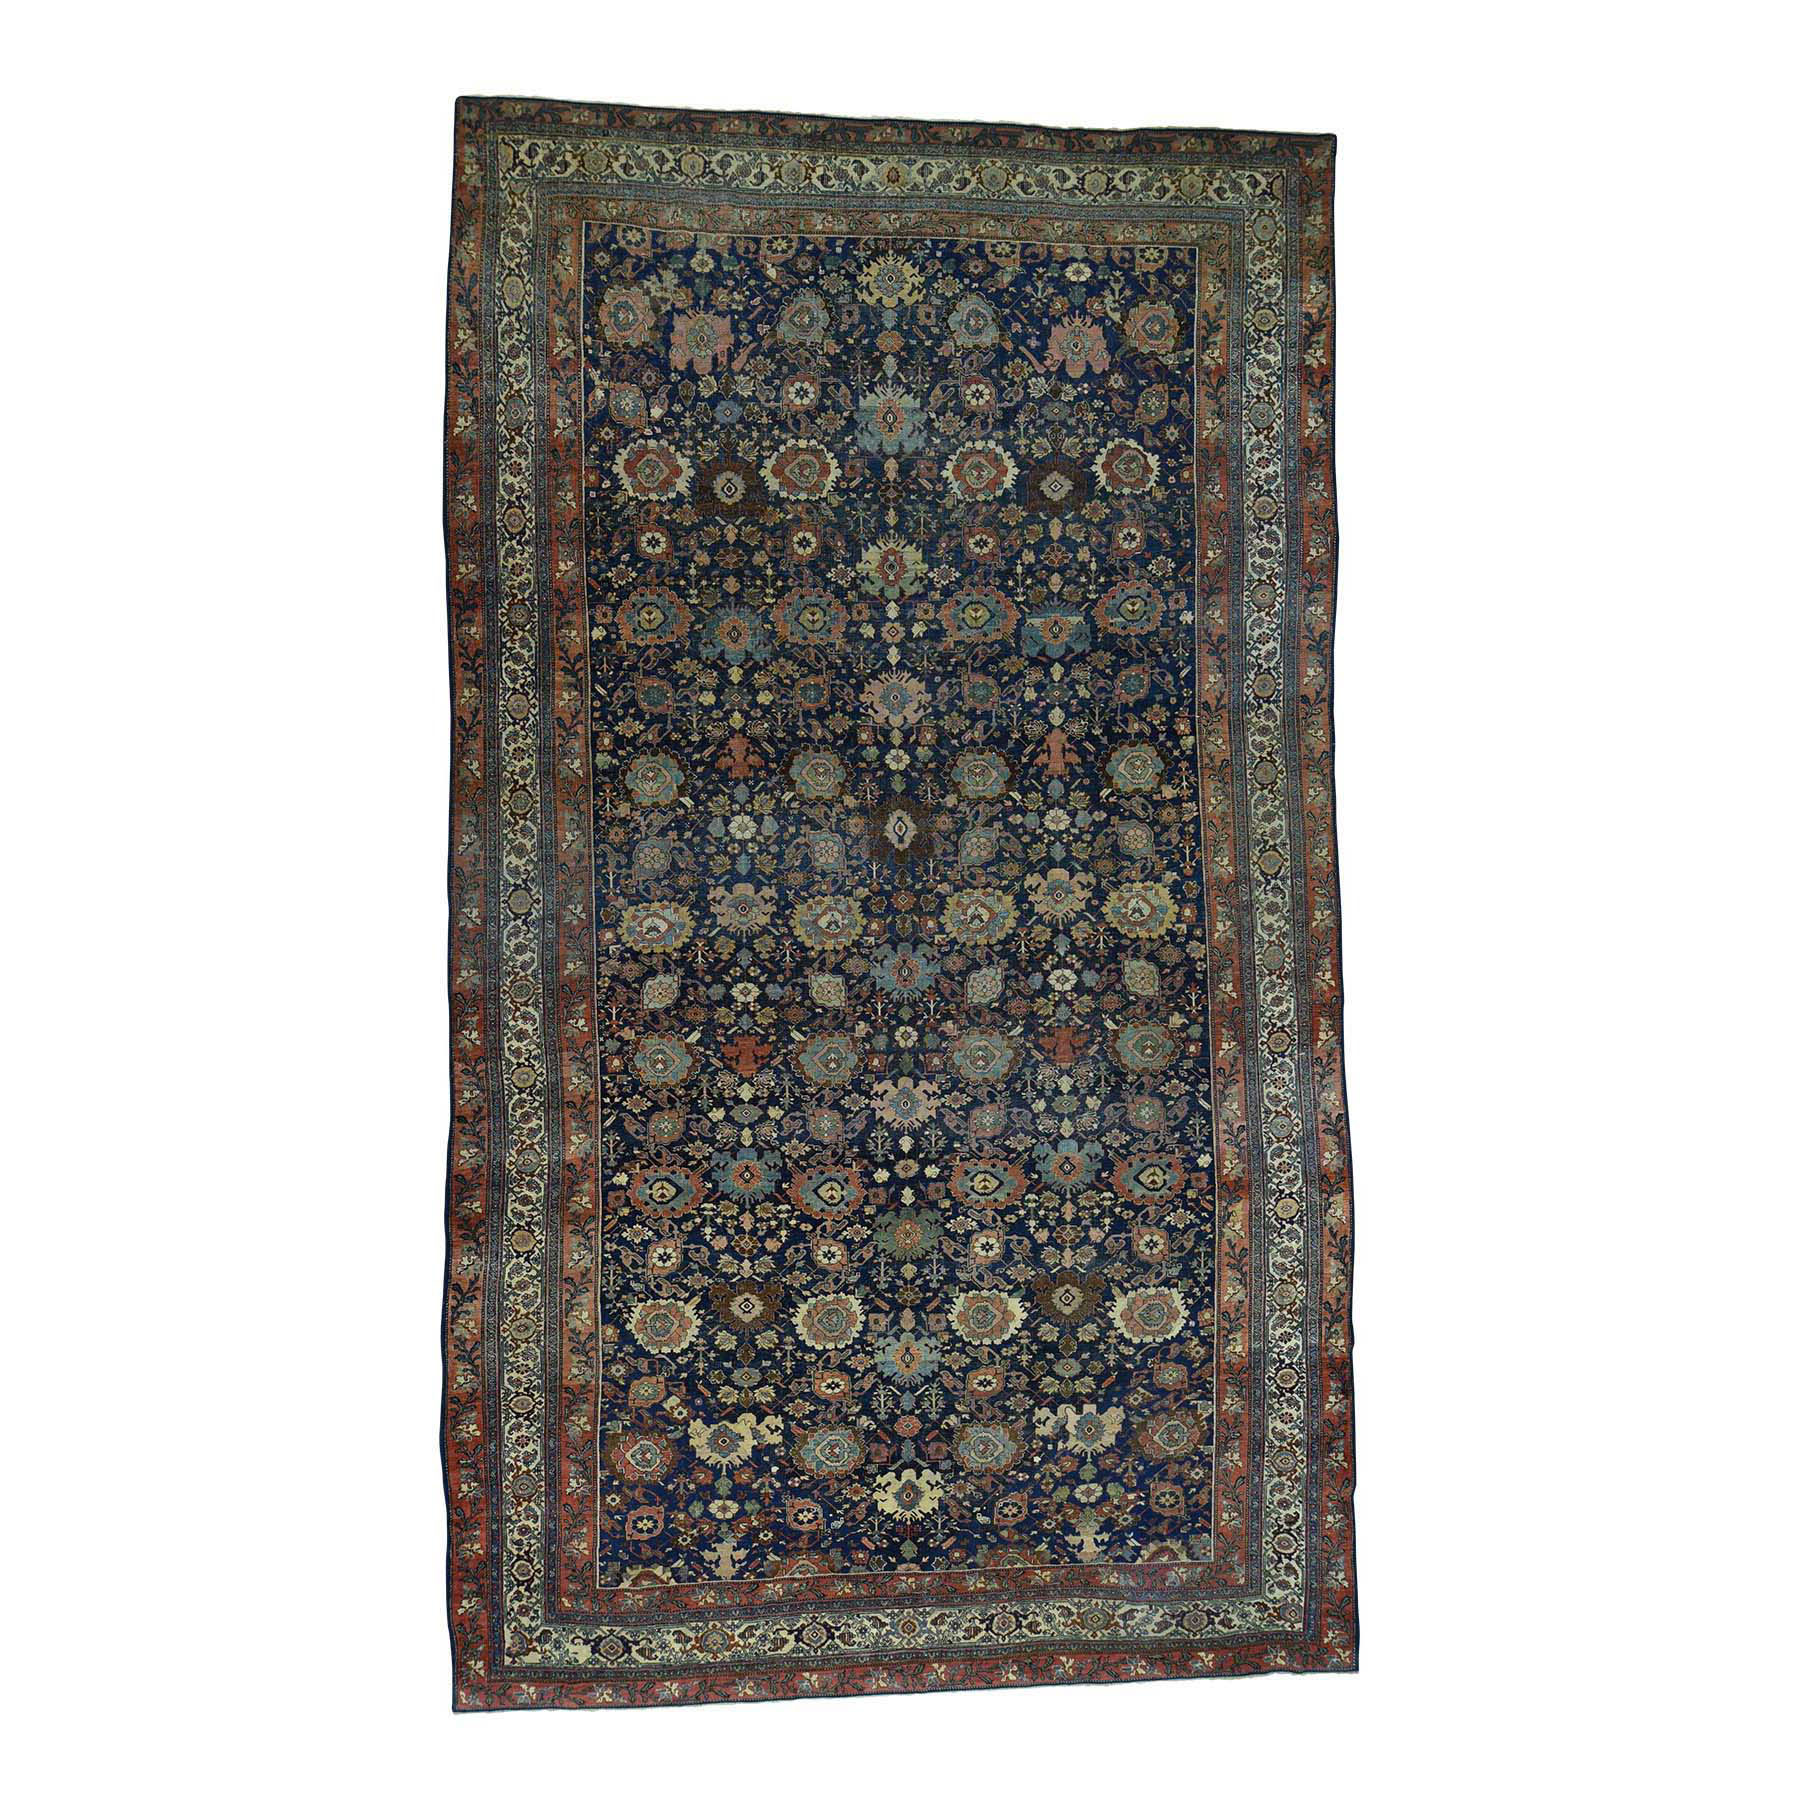 "10'10""X19' Hand-Knotted Antique Persian Bijar Even Wear Oversize Rug moacdda9"